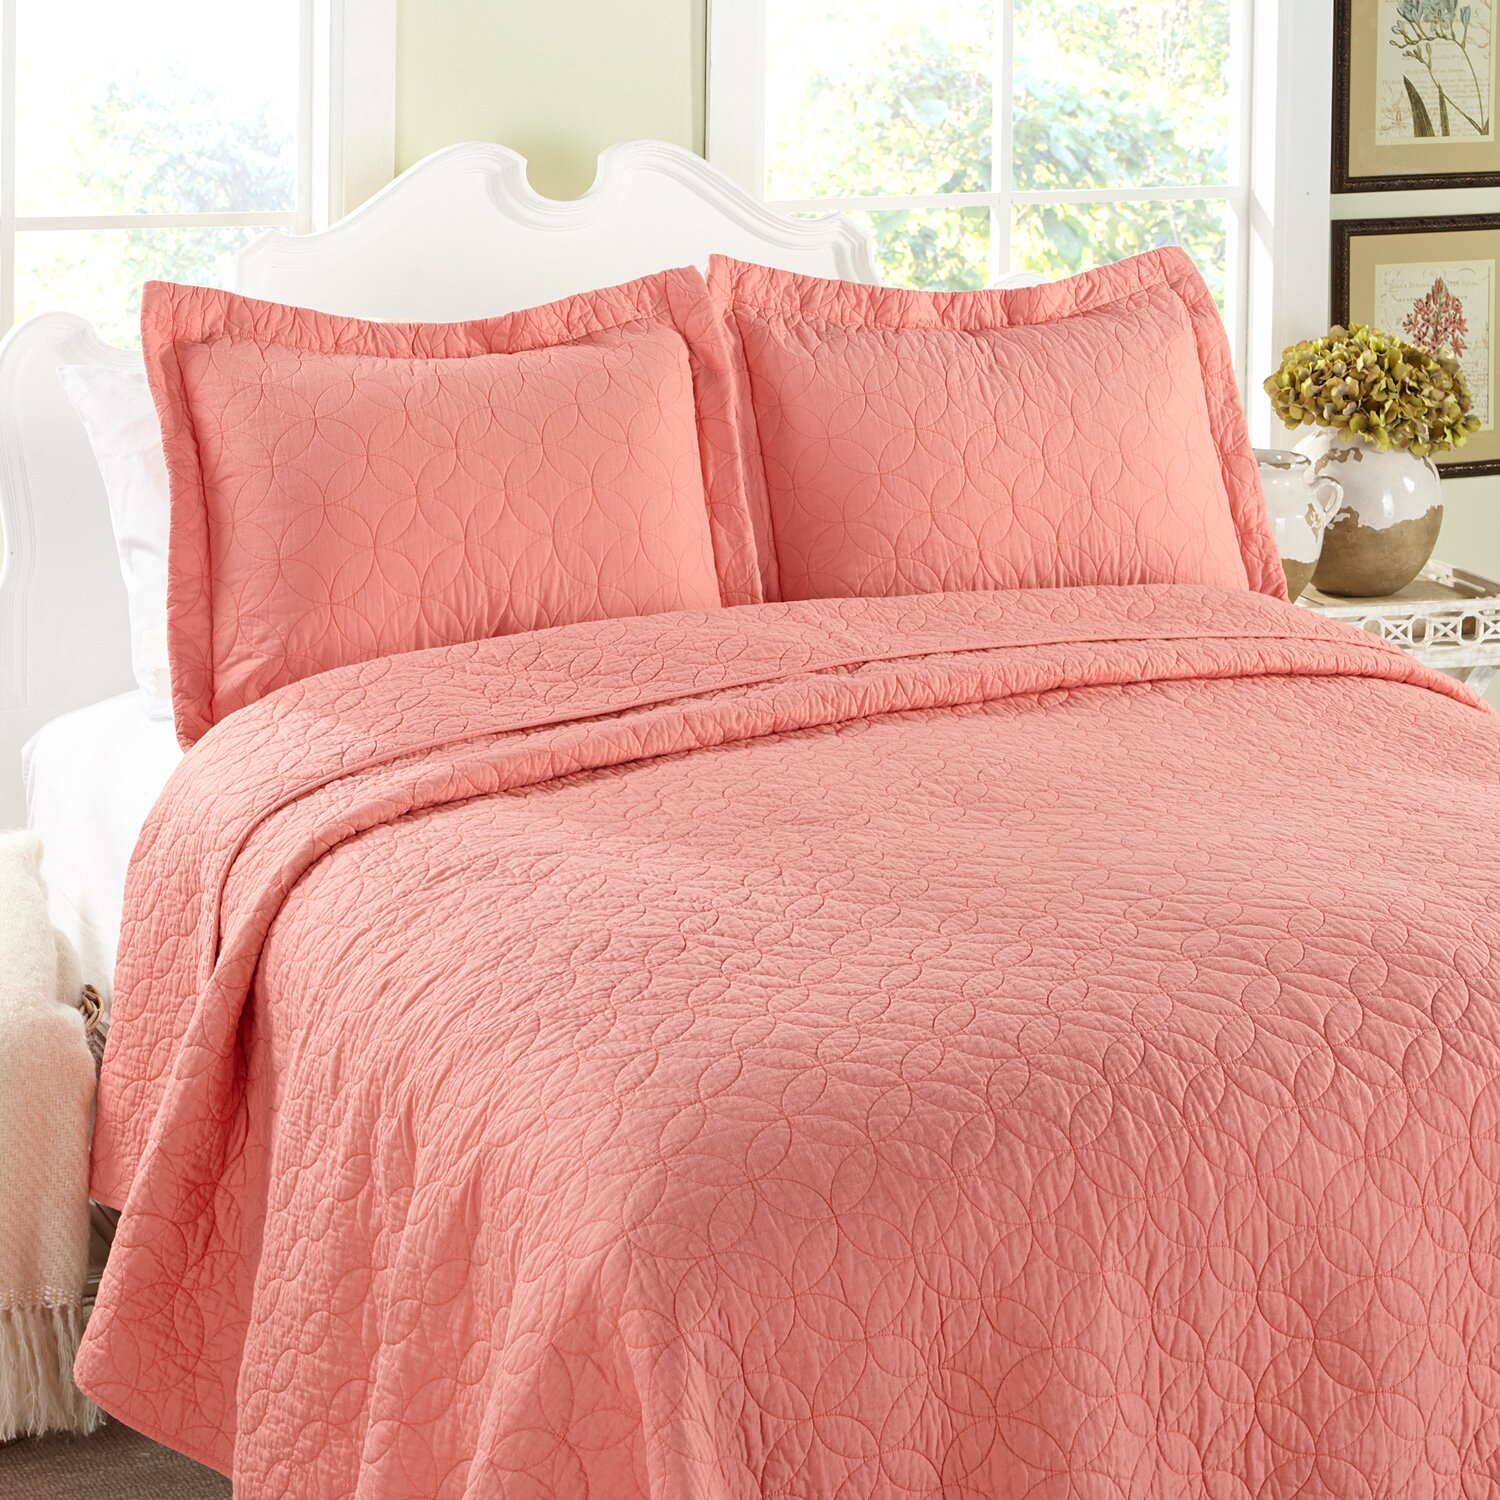 Bed sheet set with quilt - Solid Reversible Quilt Set